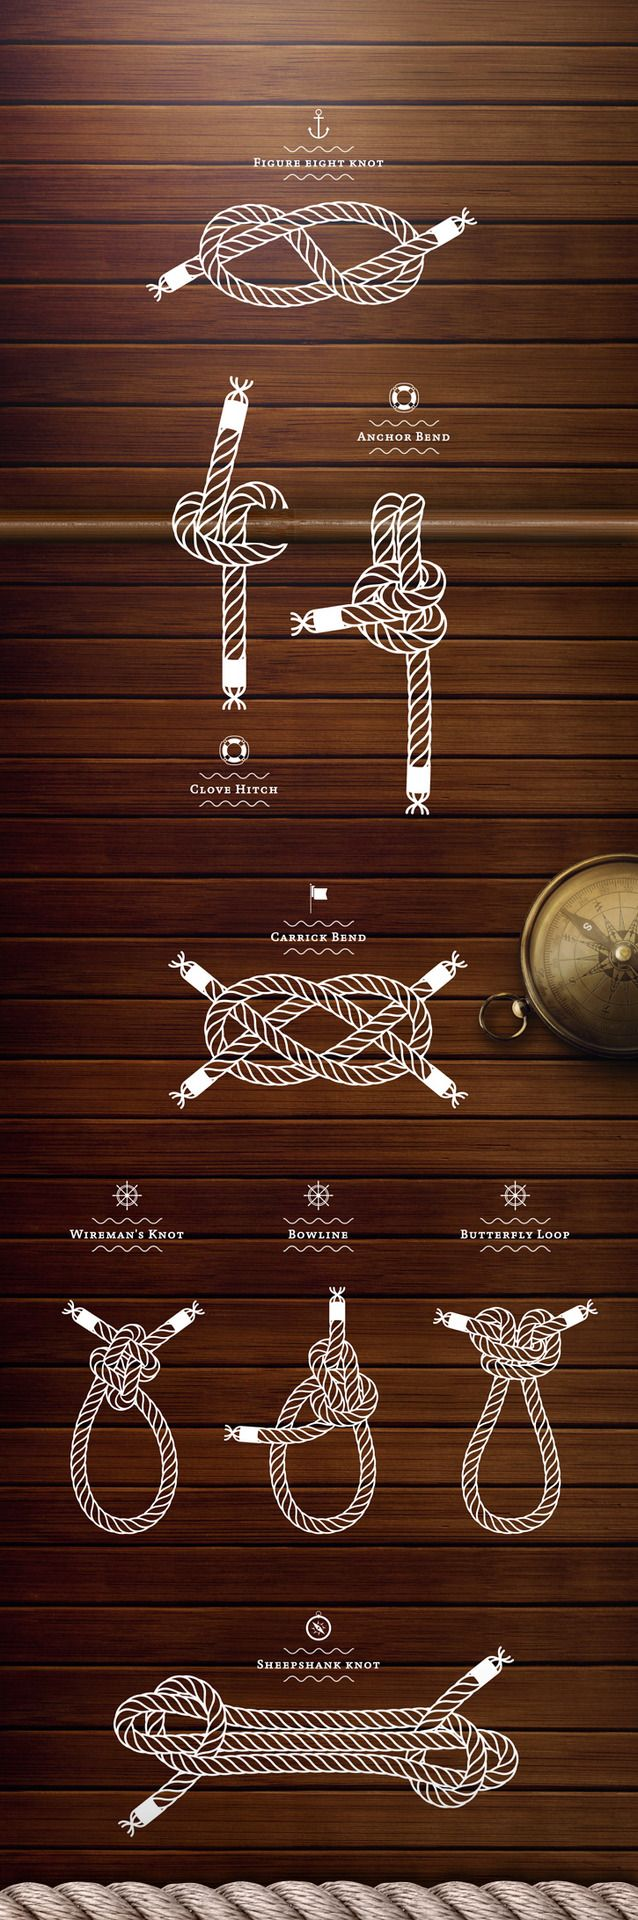 Sailing knots illustration.